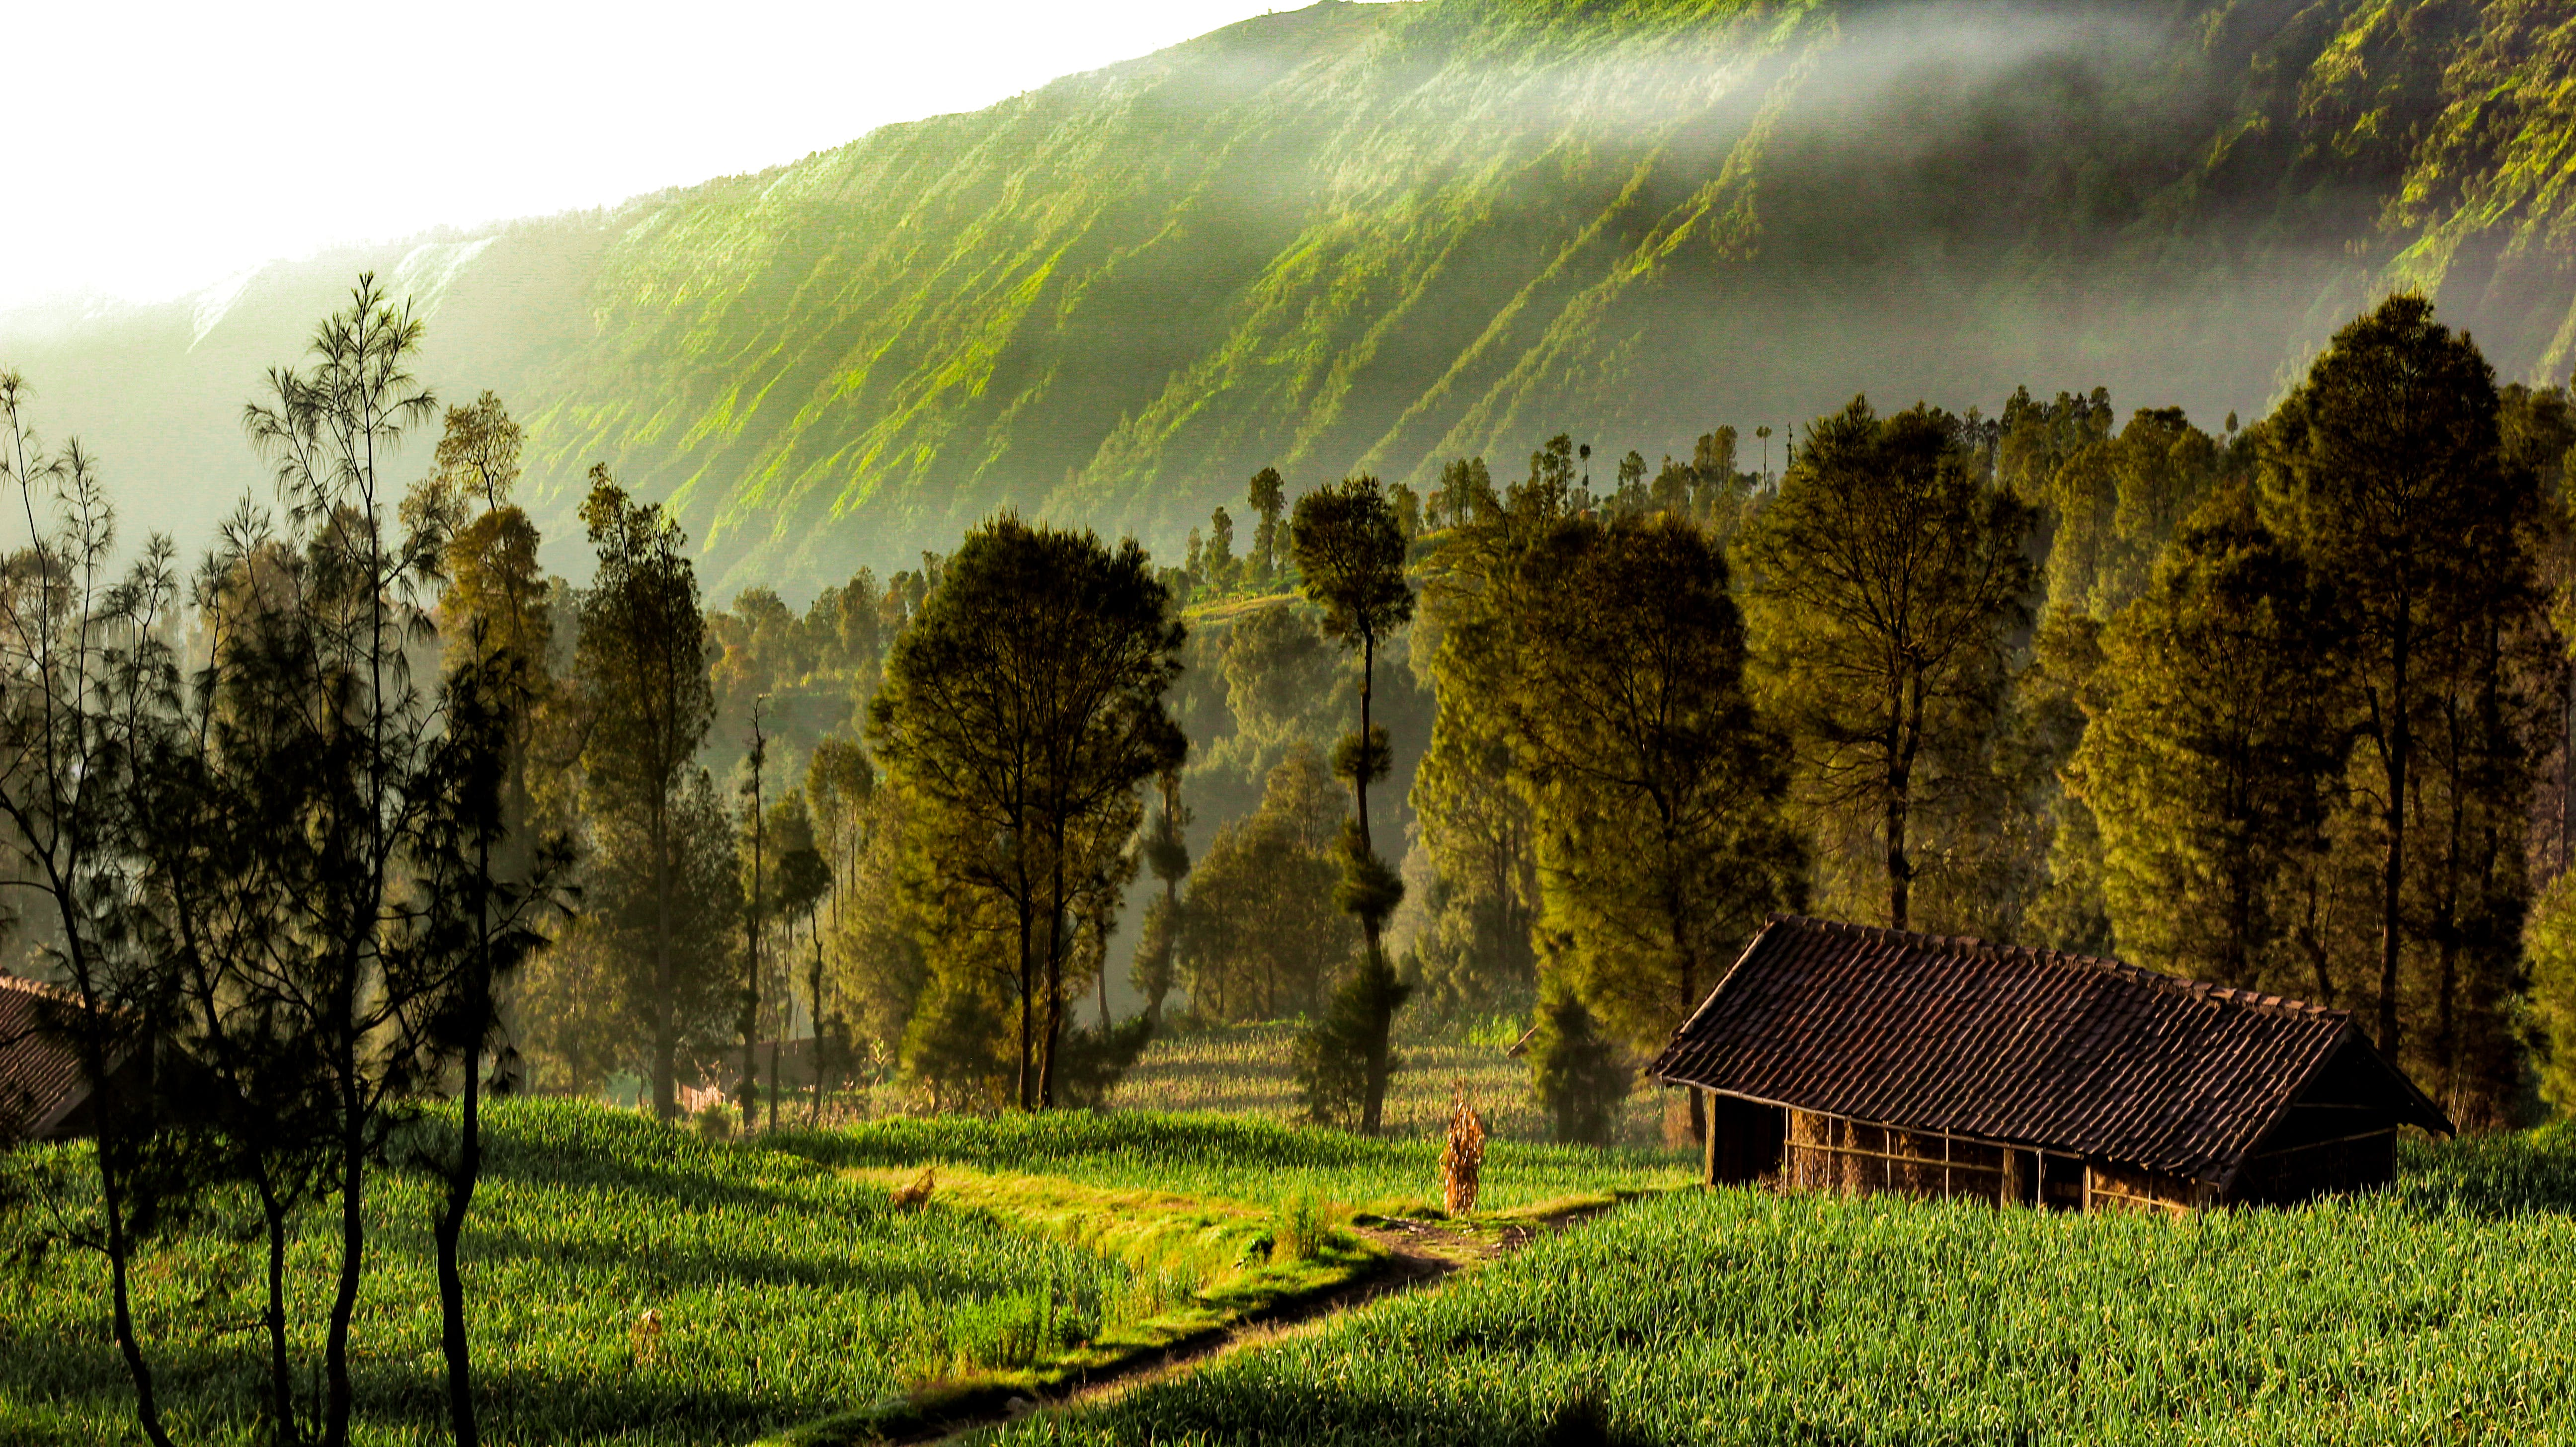 Free stock photo of early morning, green field, landscape, nature wallpaper